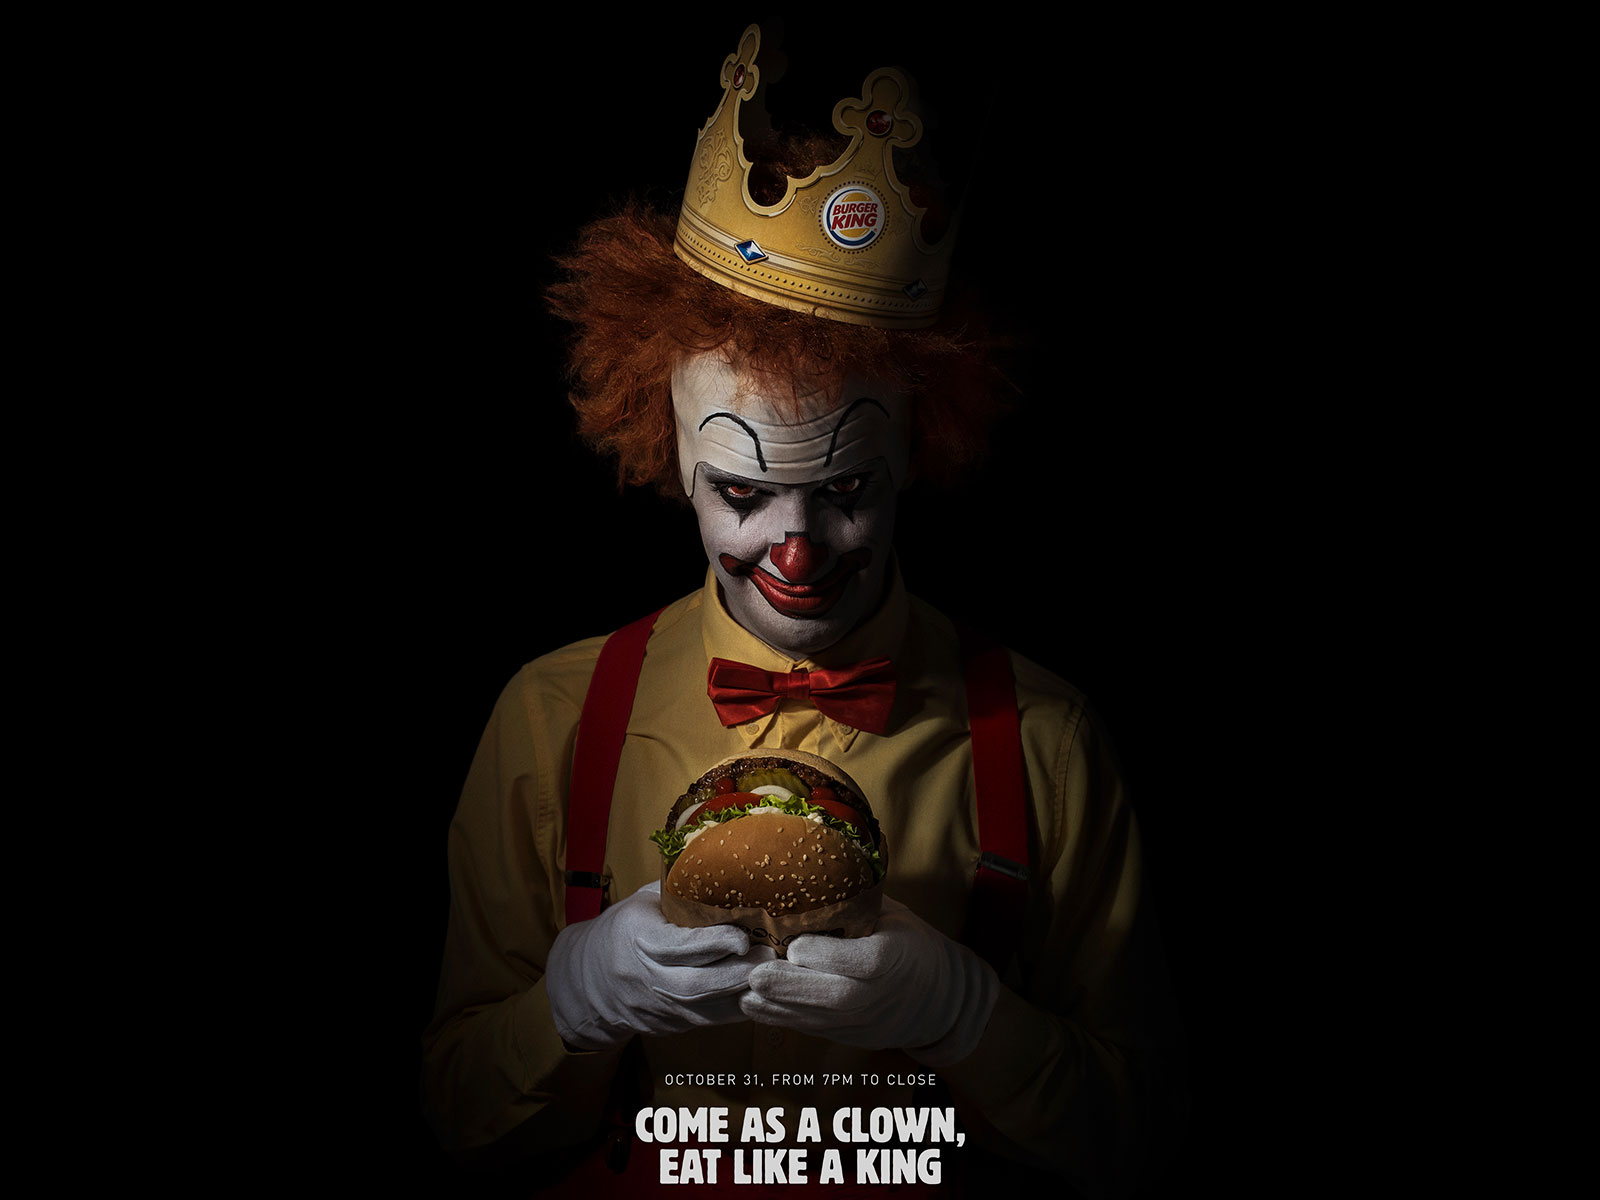 Burger King Is Offering Free Burgers to Scary Clowns, Trolling Its Biggest Rival in the Process